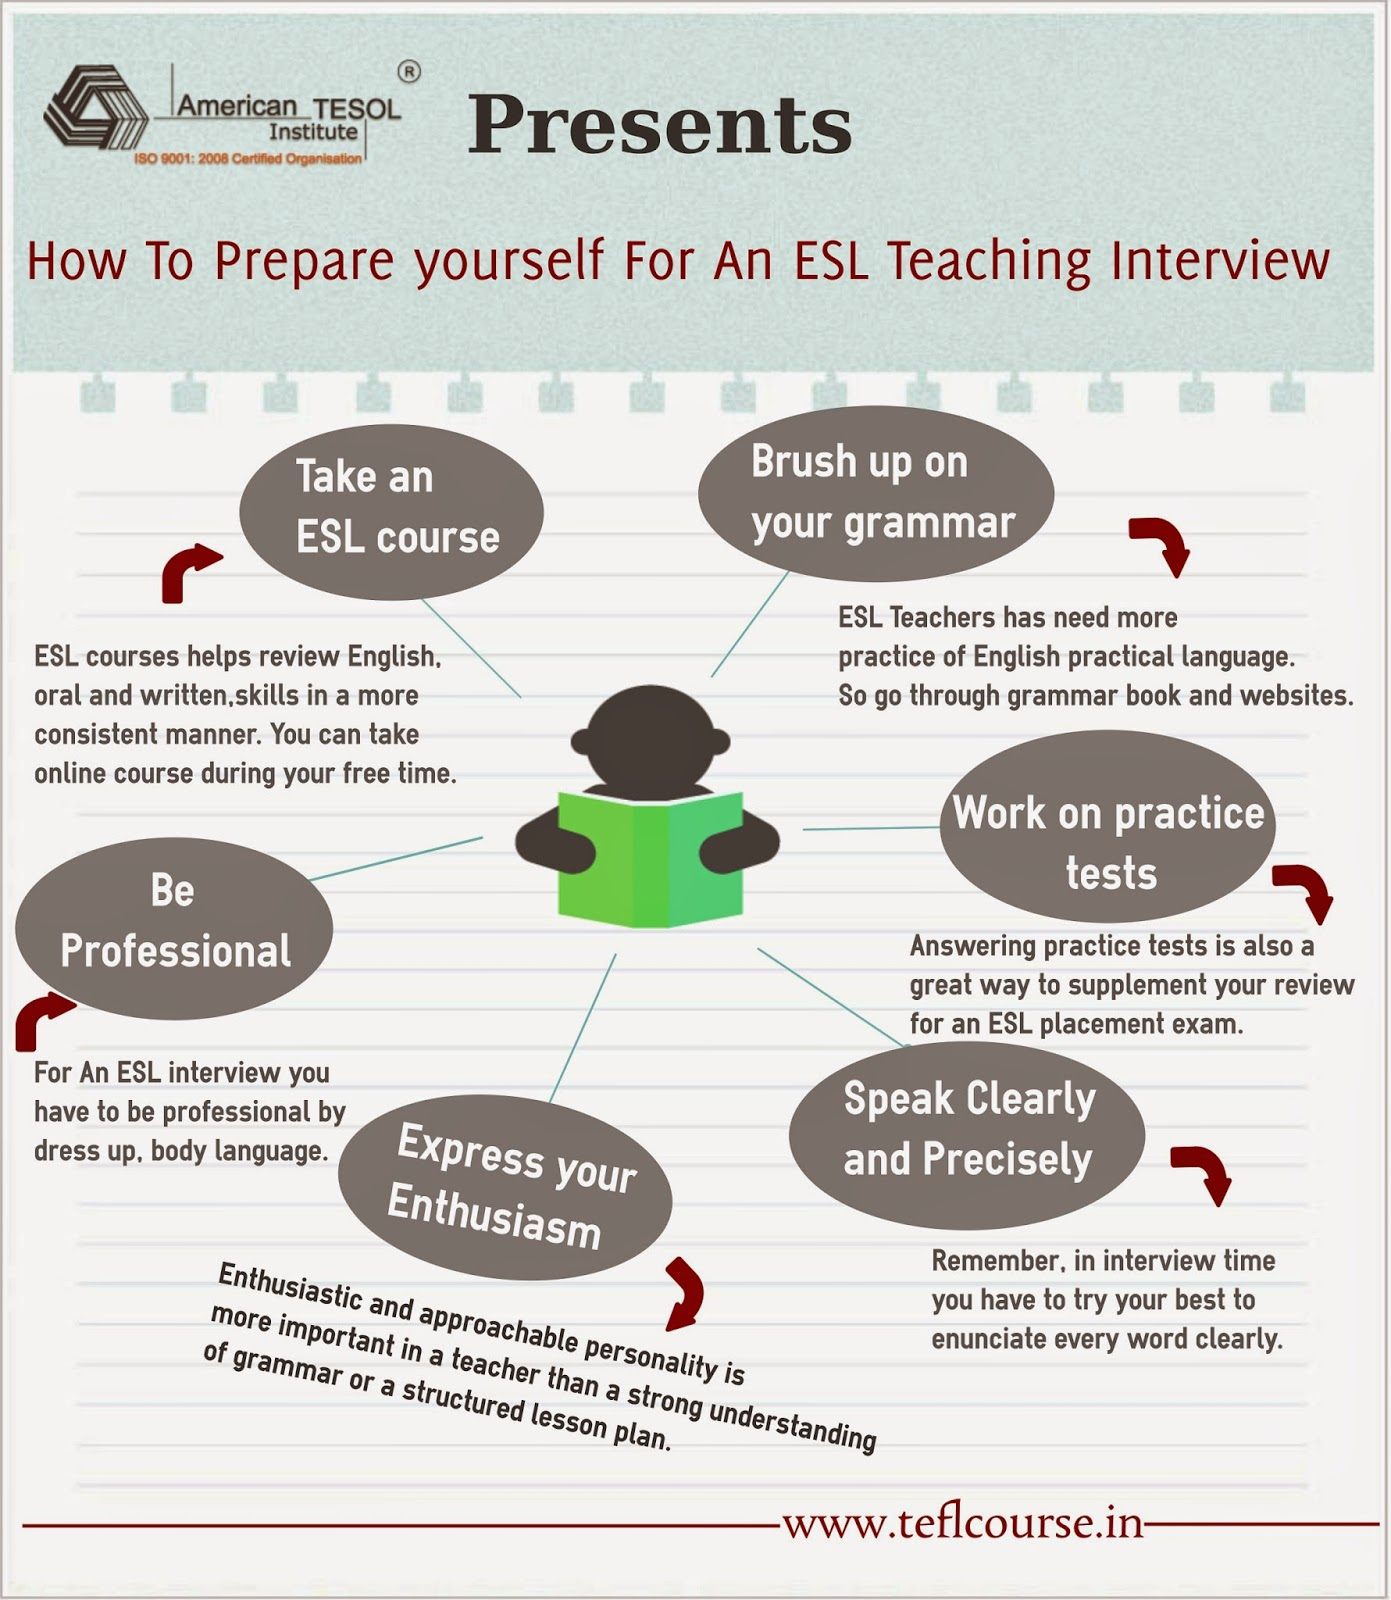 tefl course in how to prepare yourself for an esl teaching before going for an esl interview you have to prepare and focus on some important point here we are discussing on these point